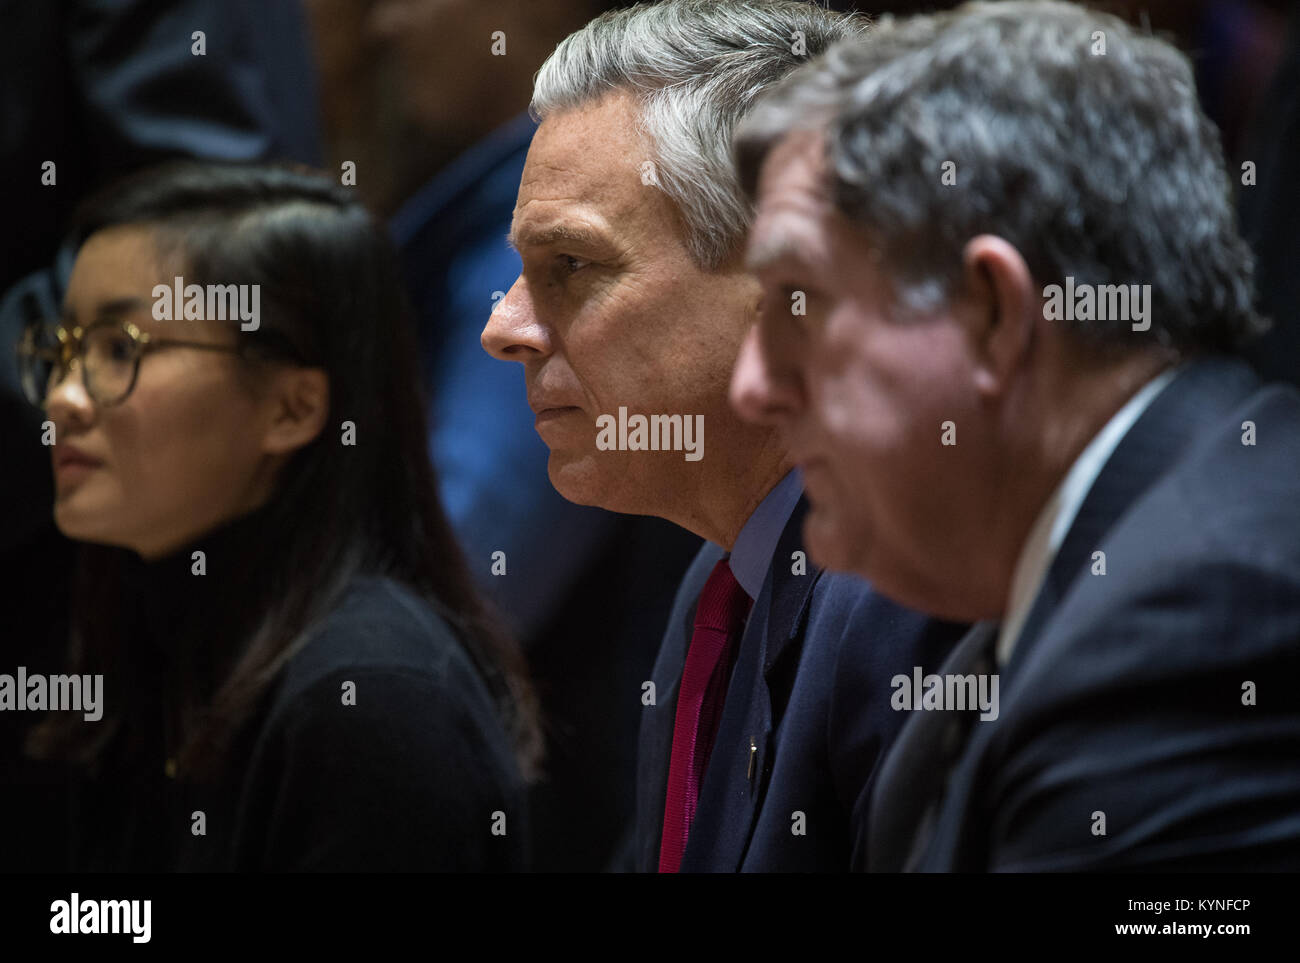 U.S. Ambassador to Russia Jon Huntsman Jr. is seen in the Moscow Mission Control Center in Korolev, Russia while - Stock Image